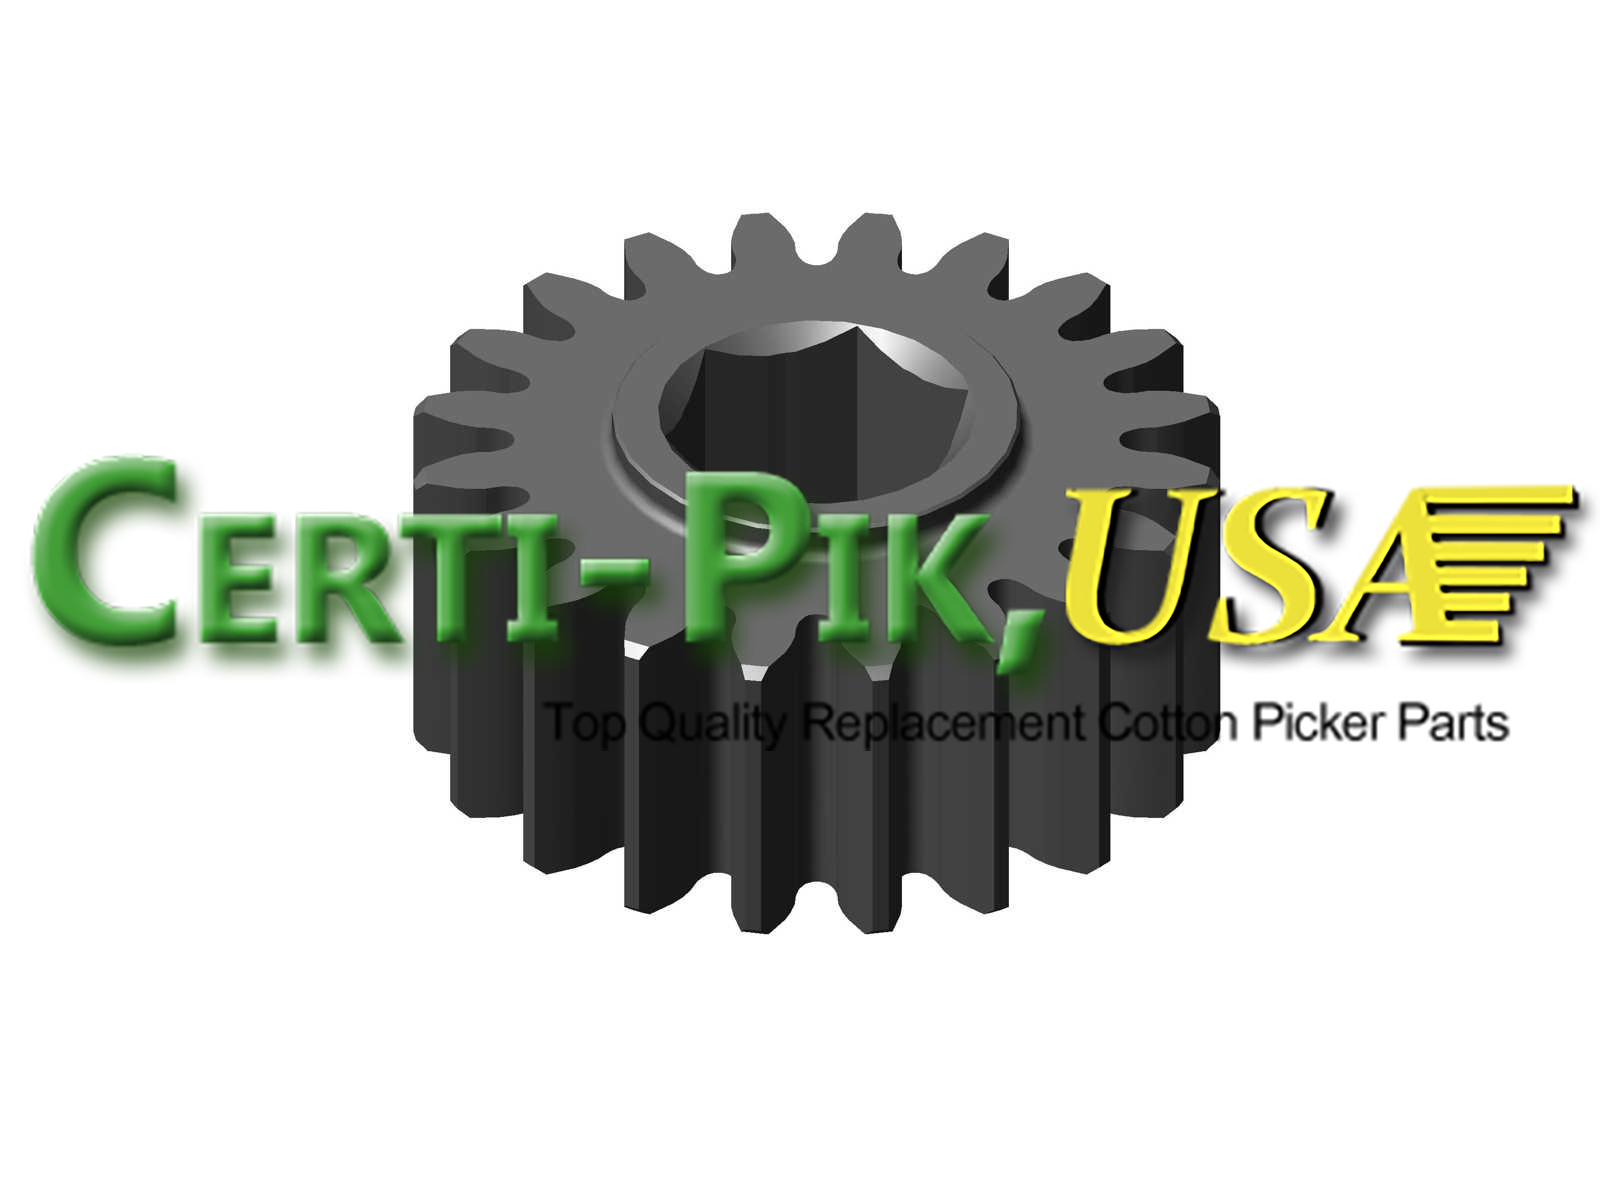 Picking Unit System: John Deere Upper Doffer Adjustment Housing and Sprockets Assembly N273954 (73954) for Sale